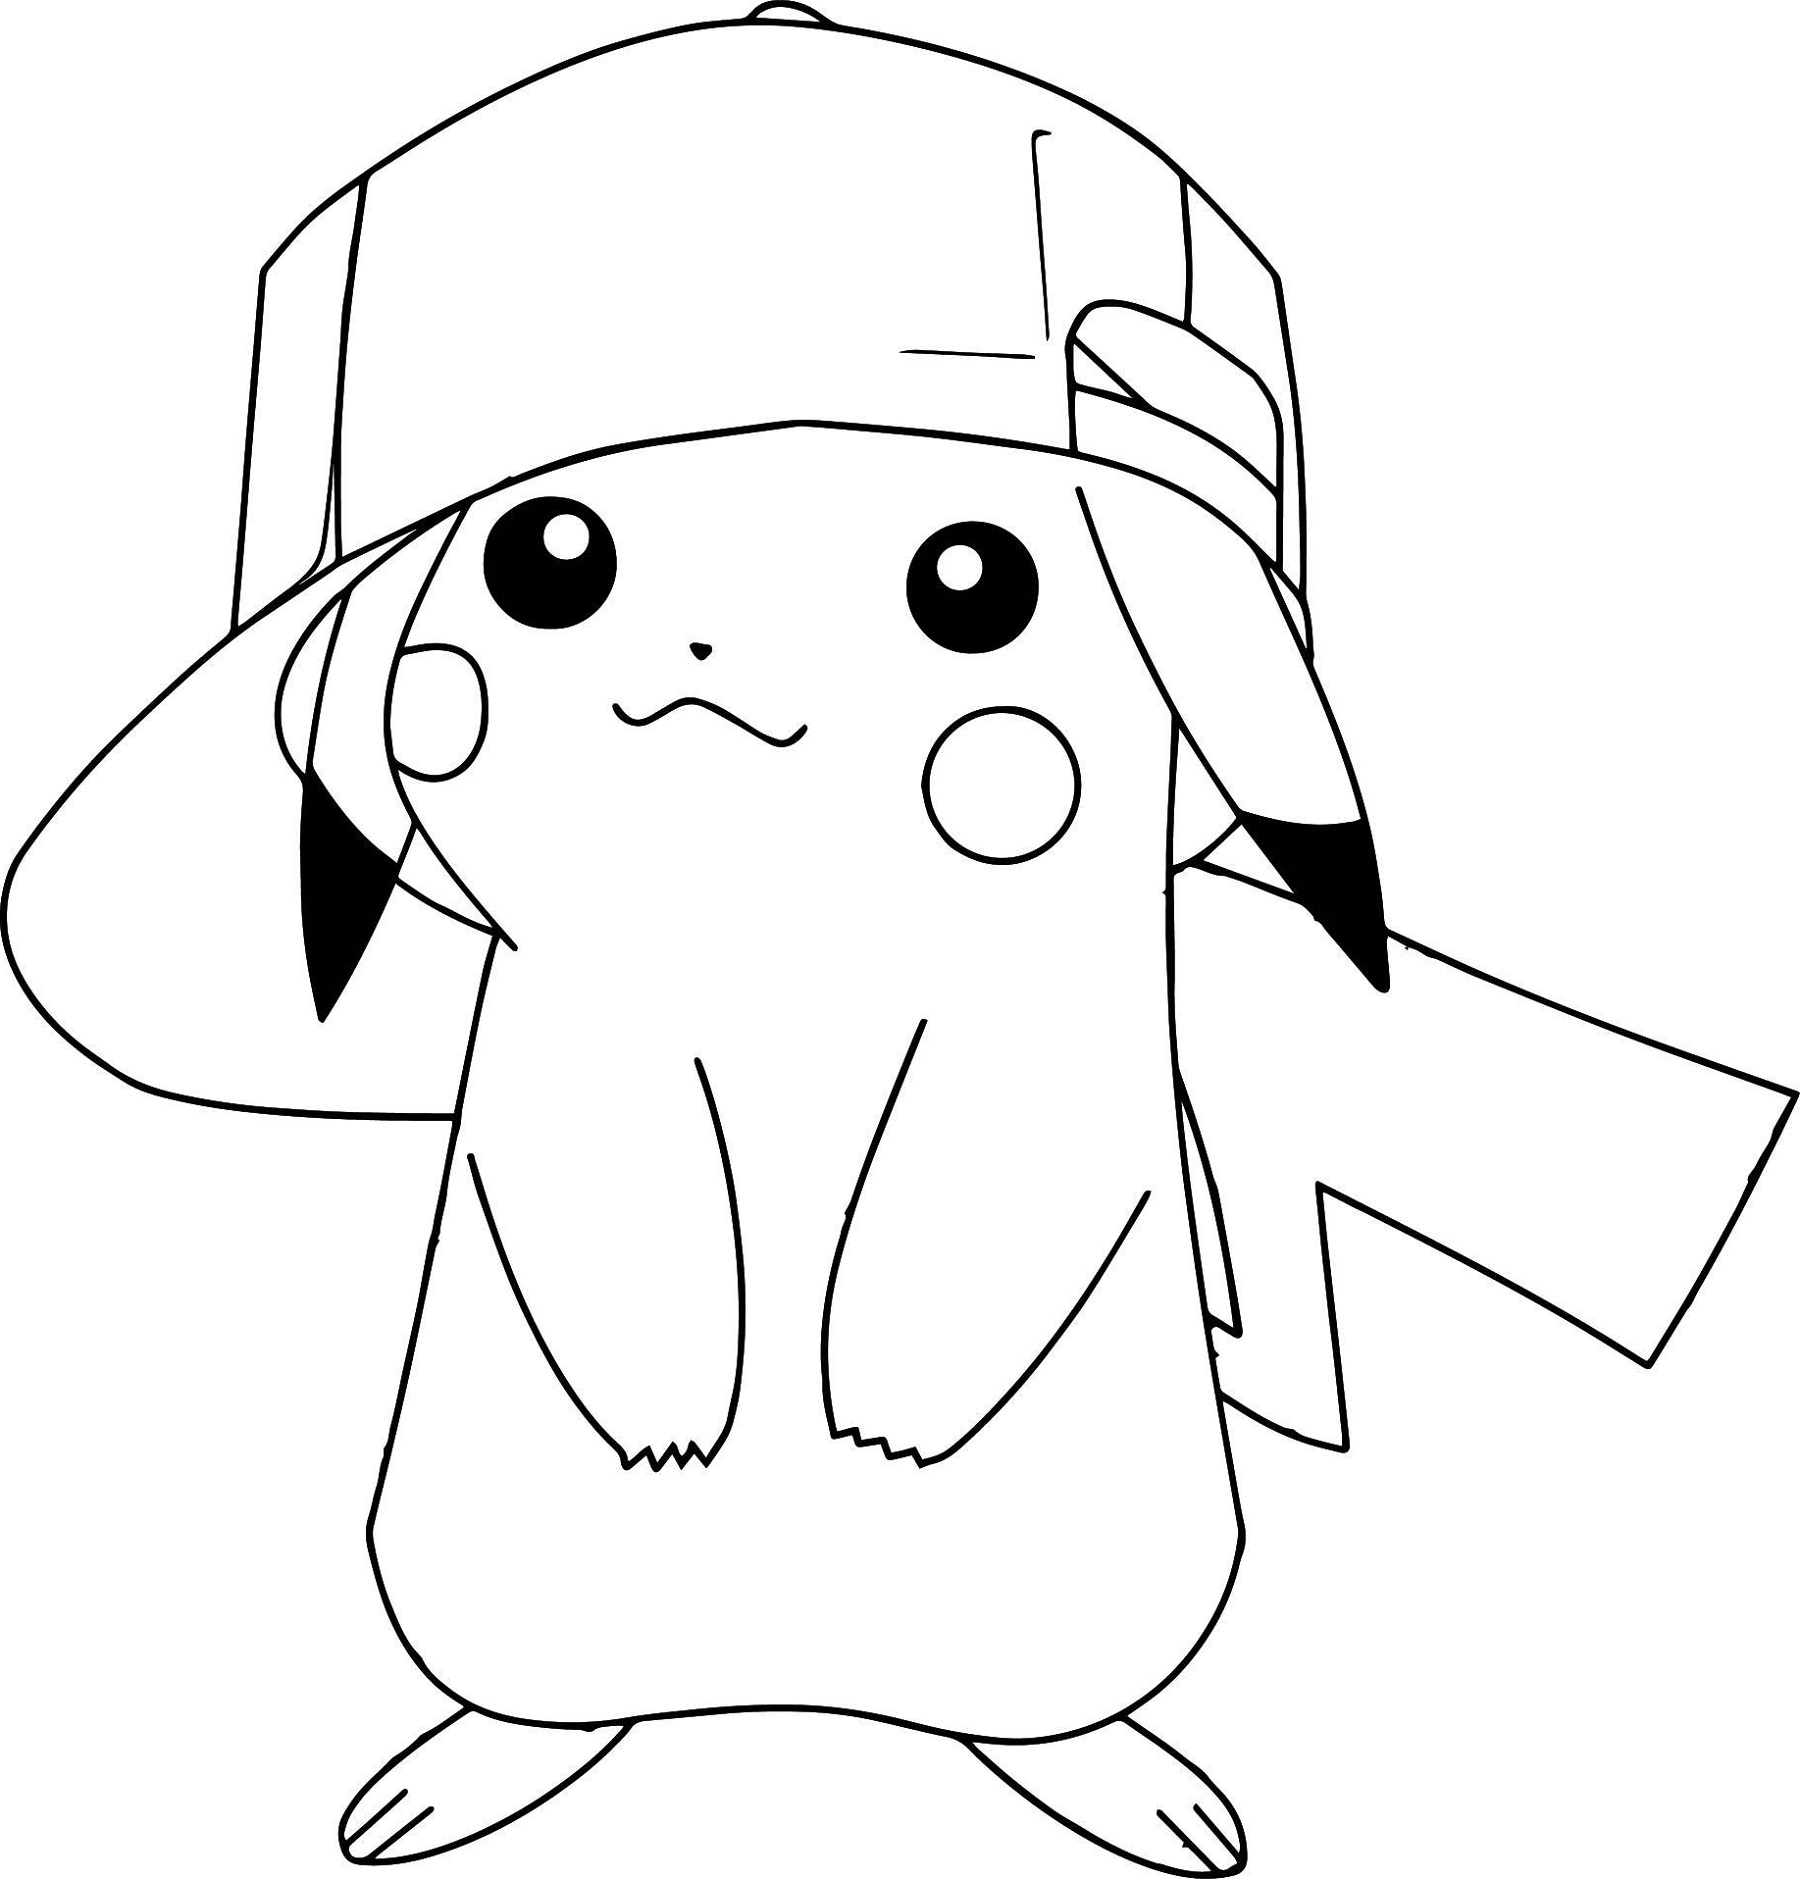 picachu coloring pages printable pikachu coloring pages for kids cool2bkids pages coloring picachu